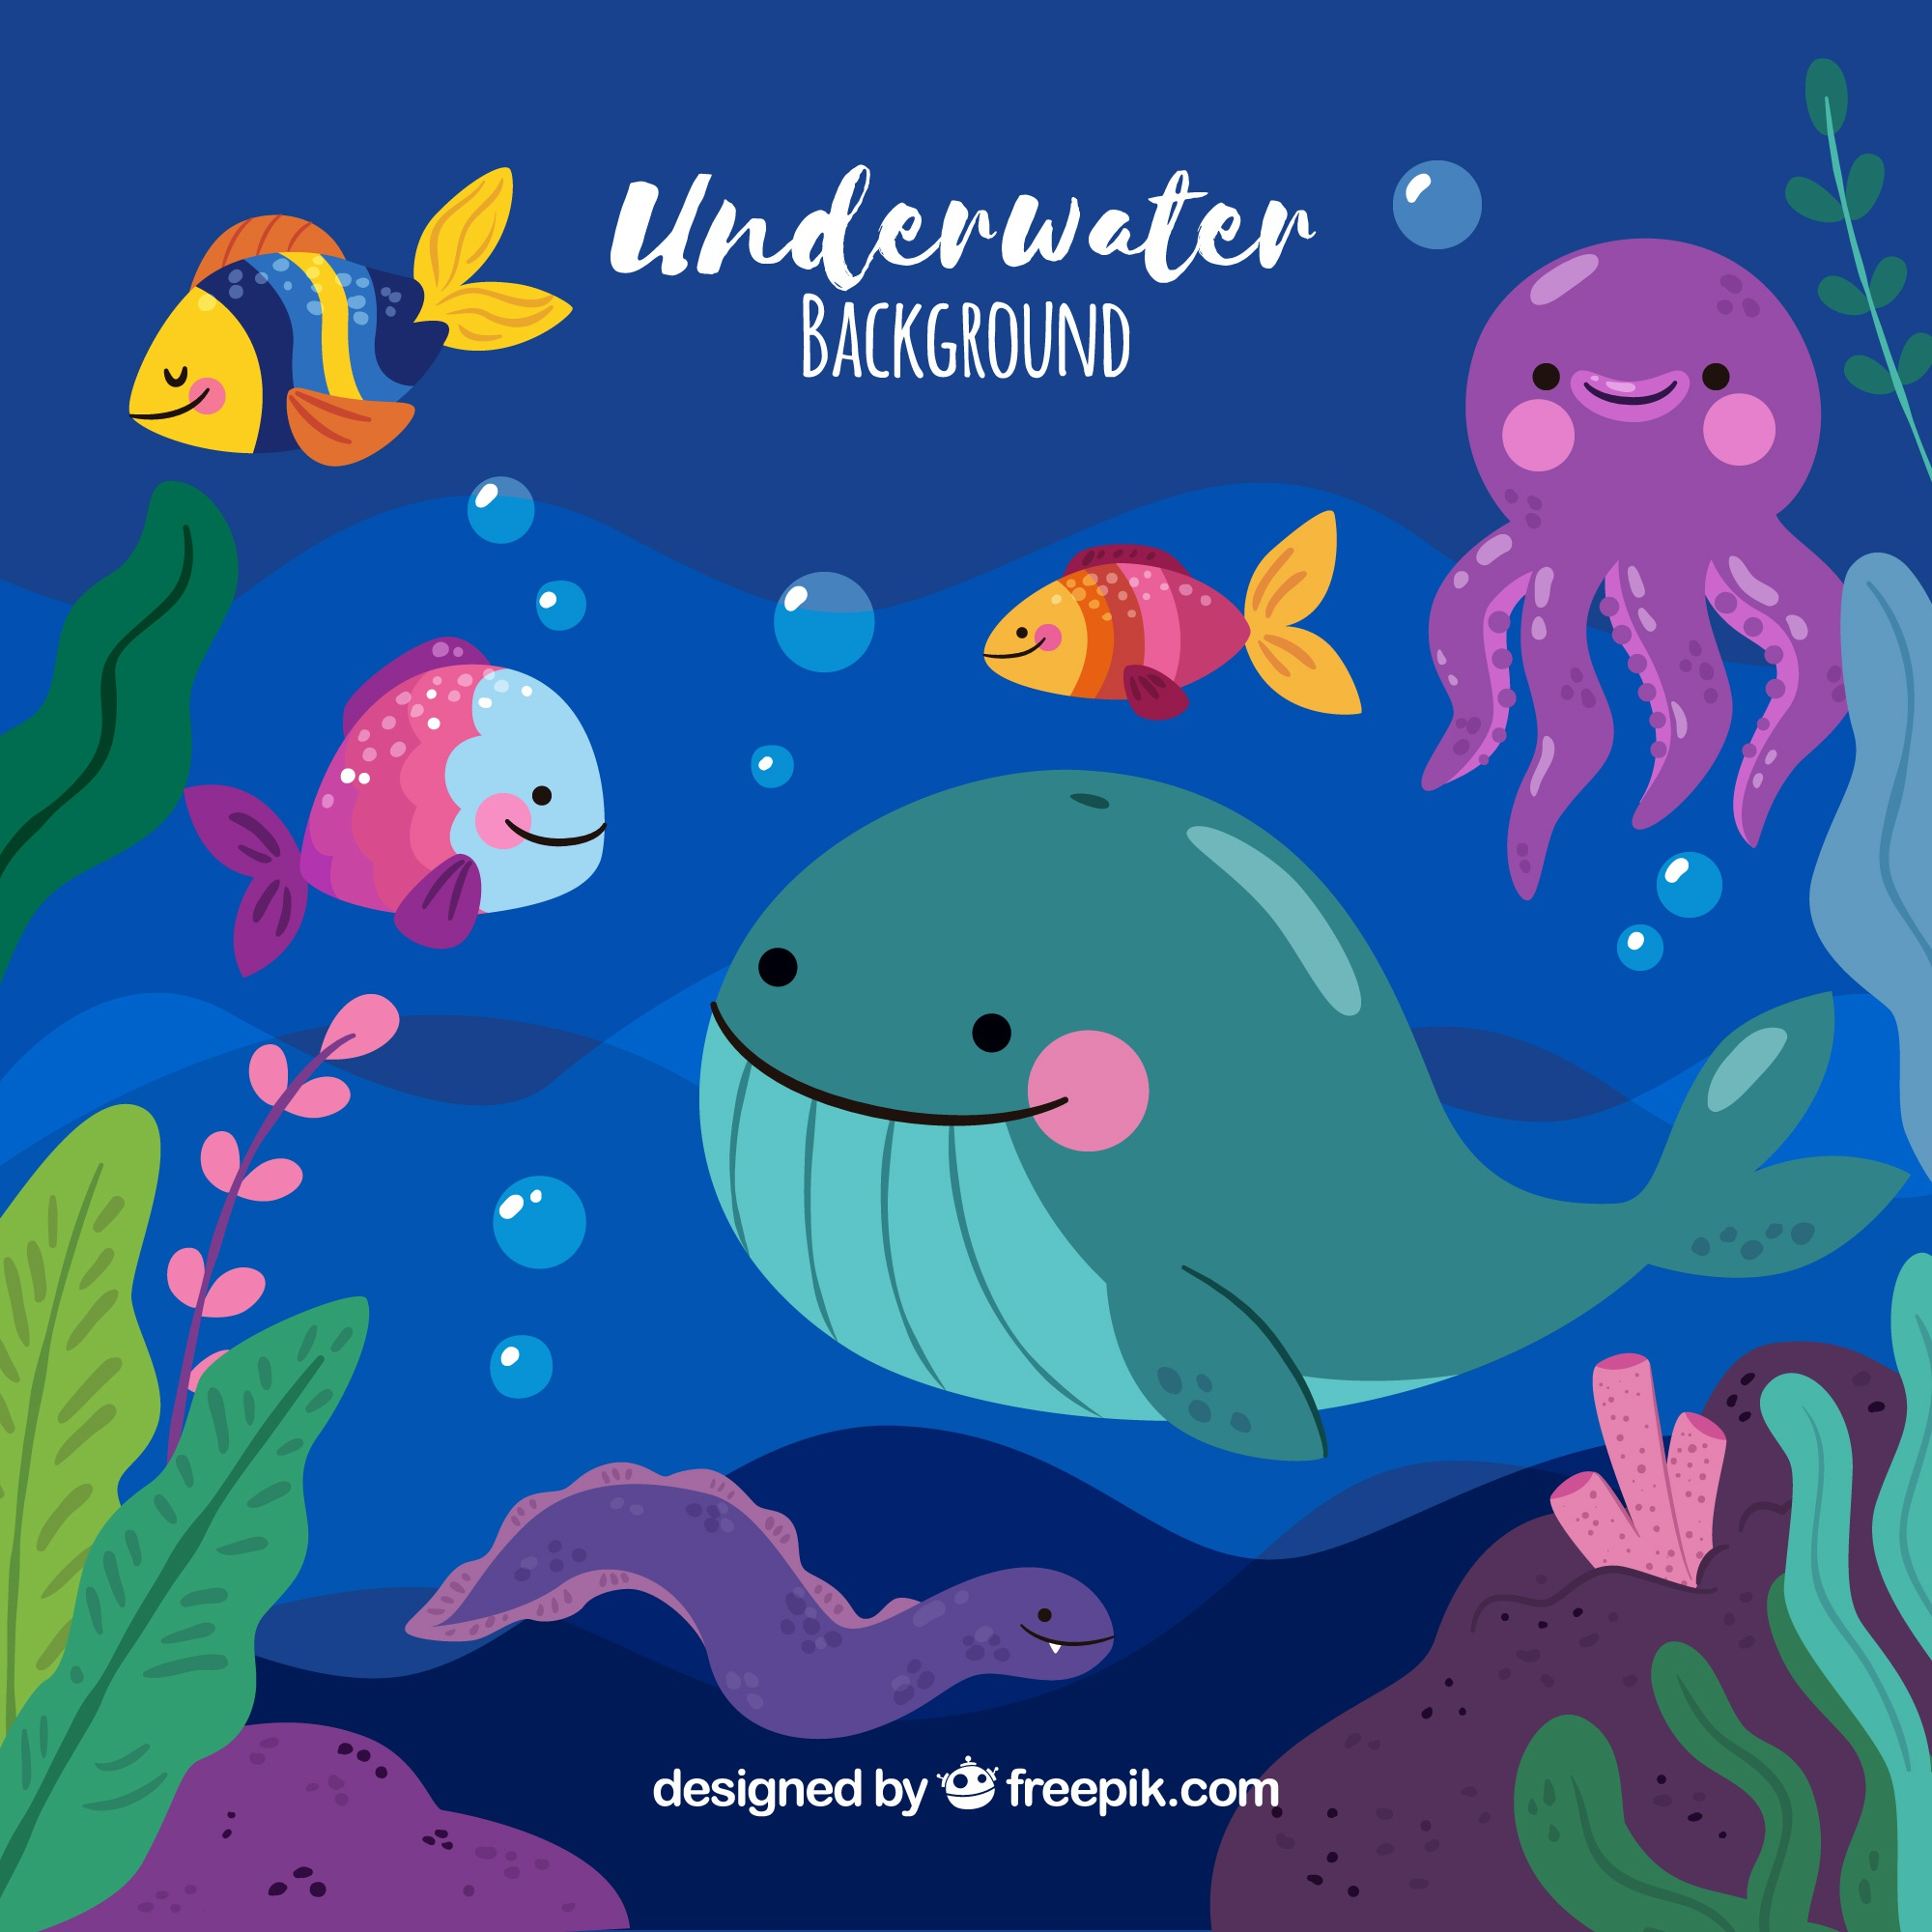 Underwater background with marine animals